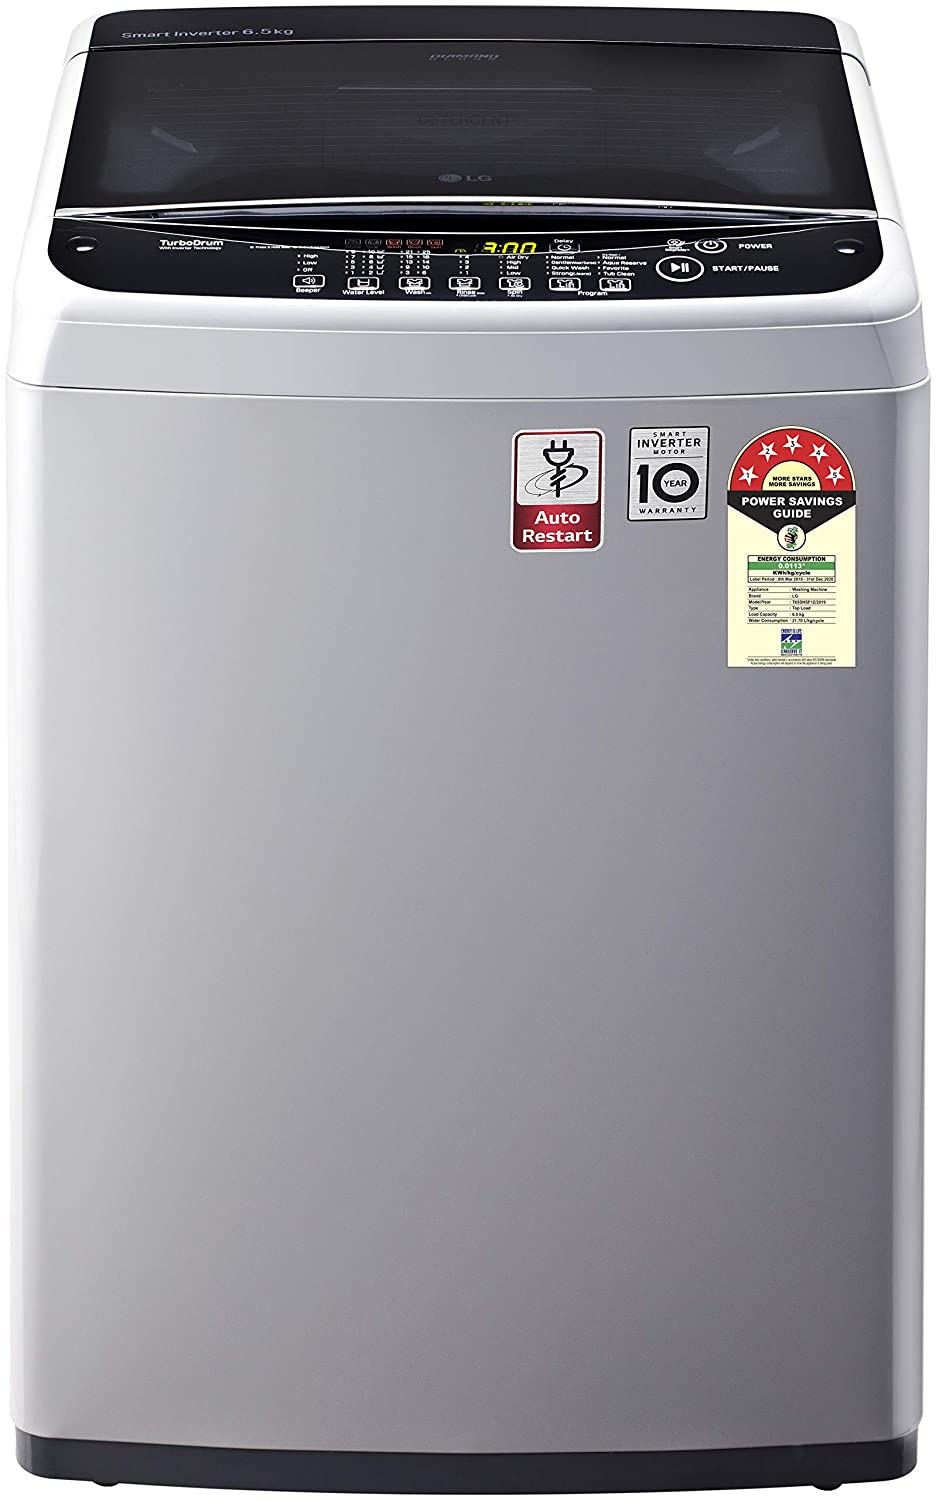 Best Top Load Washing Machine Picked by grabitonce.in